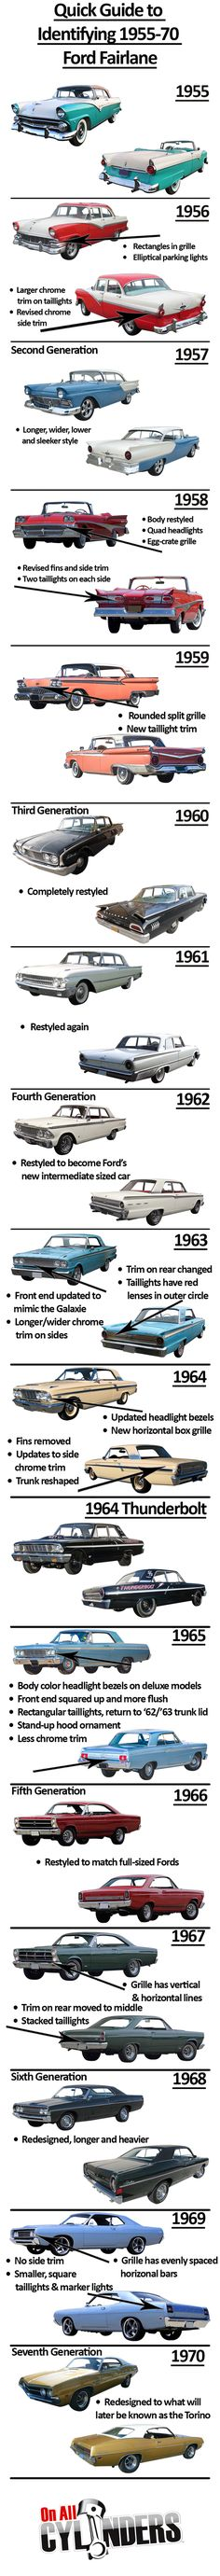 Ford Fairlane Identification Guide 1955-1970